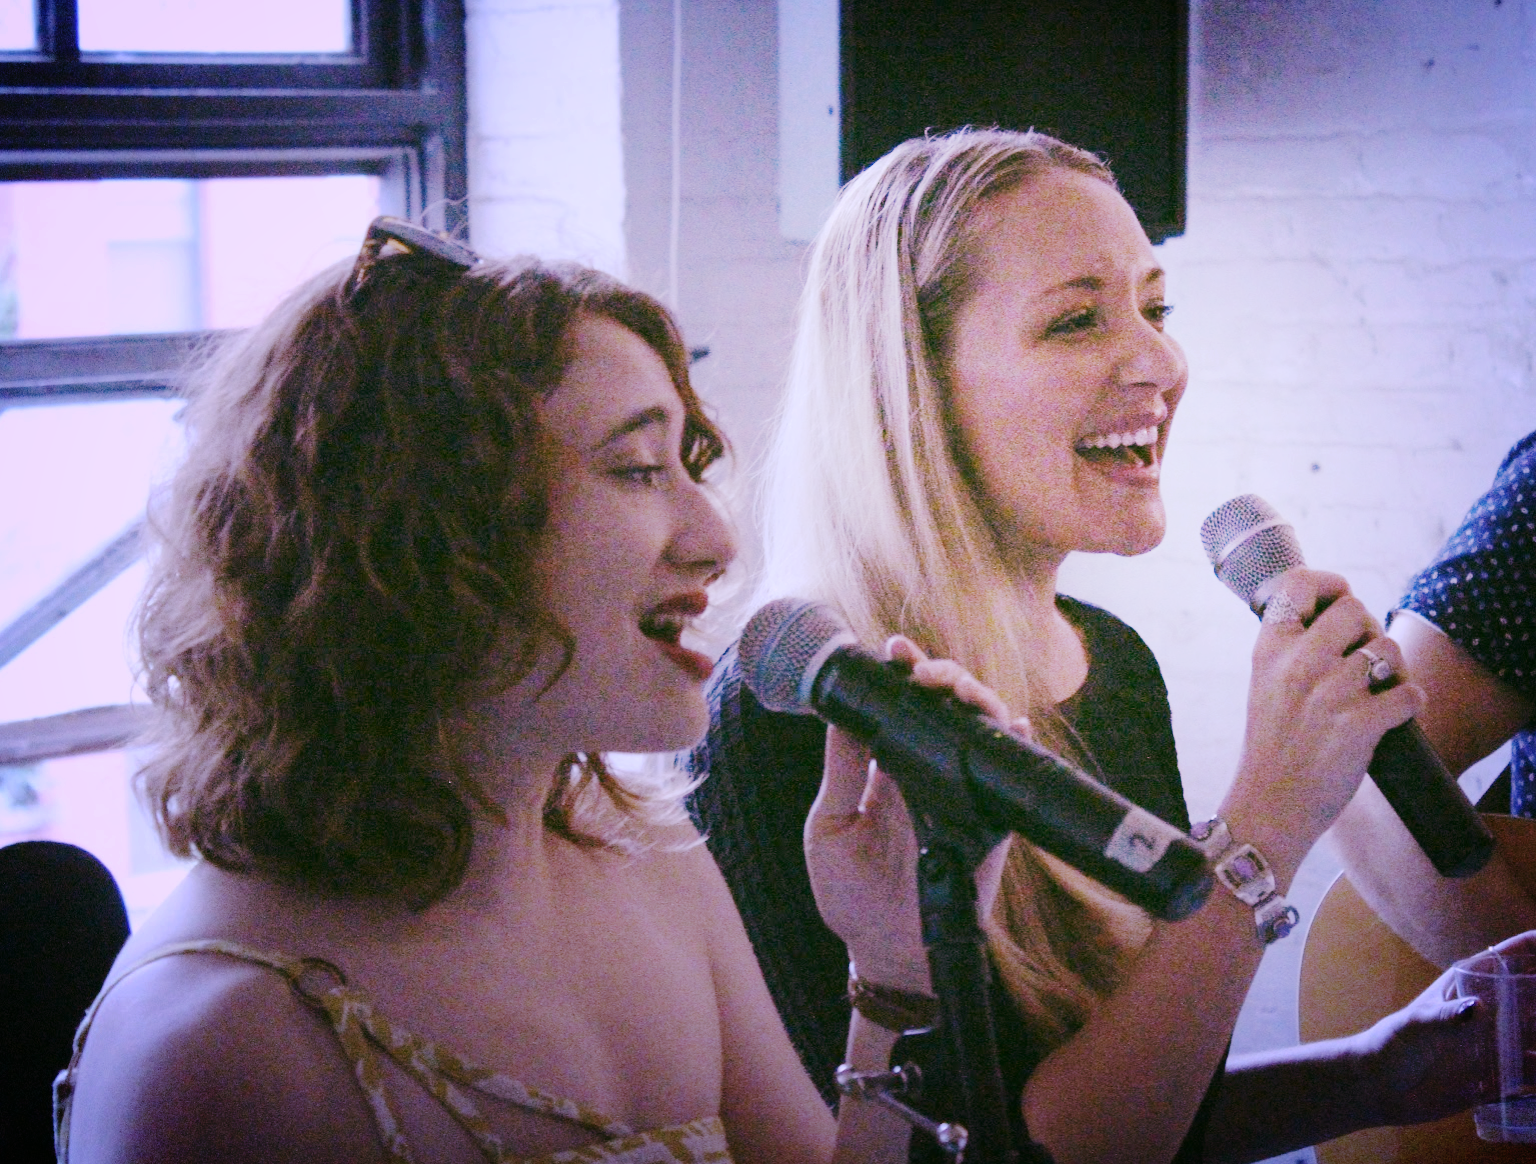 emily singing with fellow pig sara!